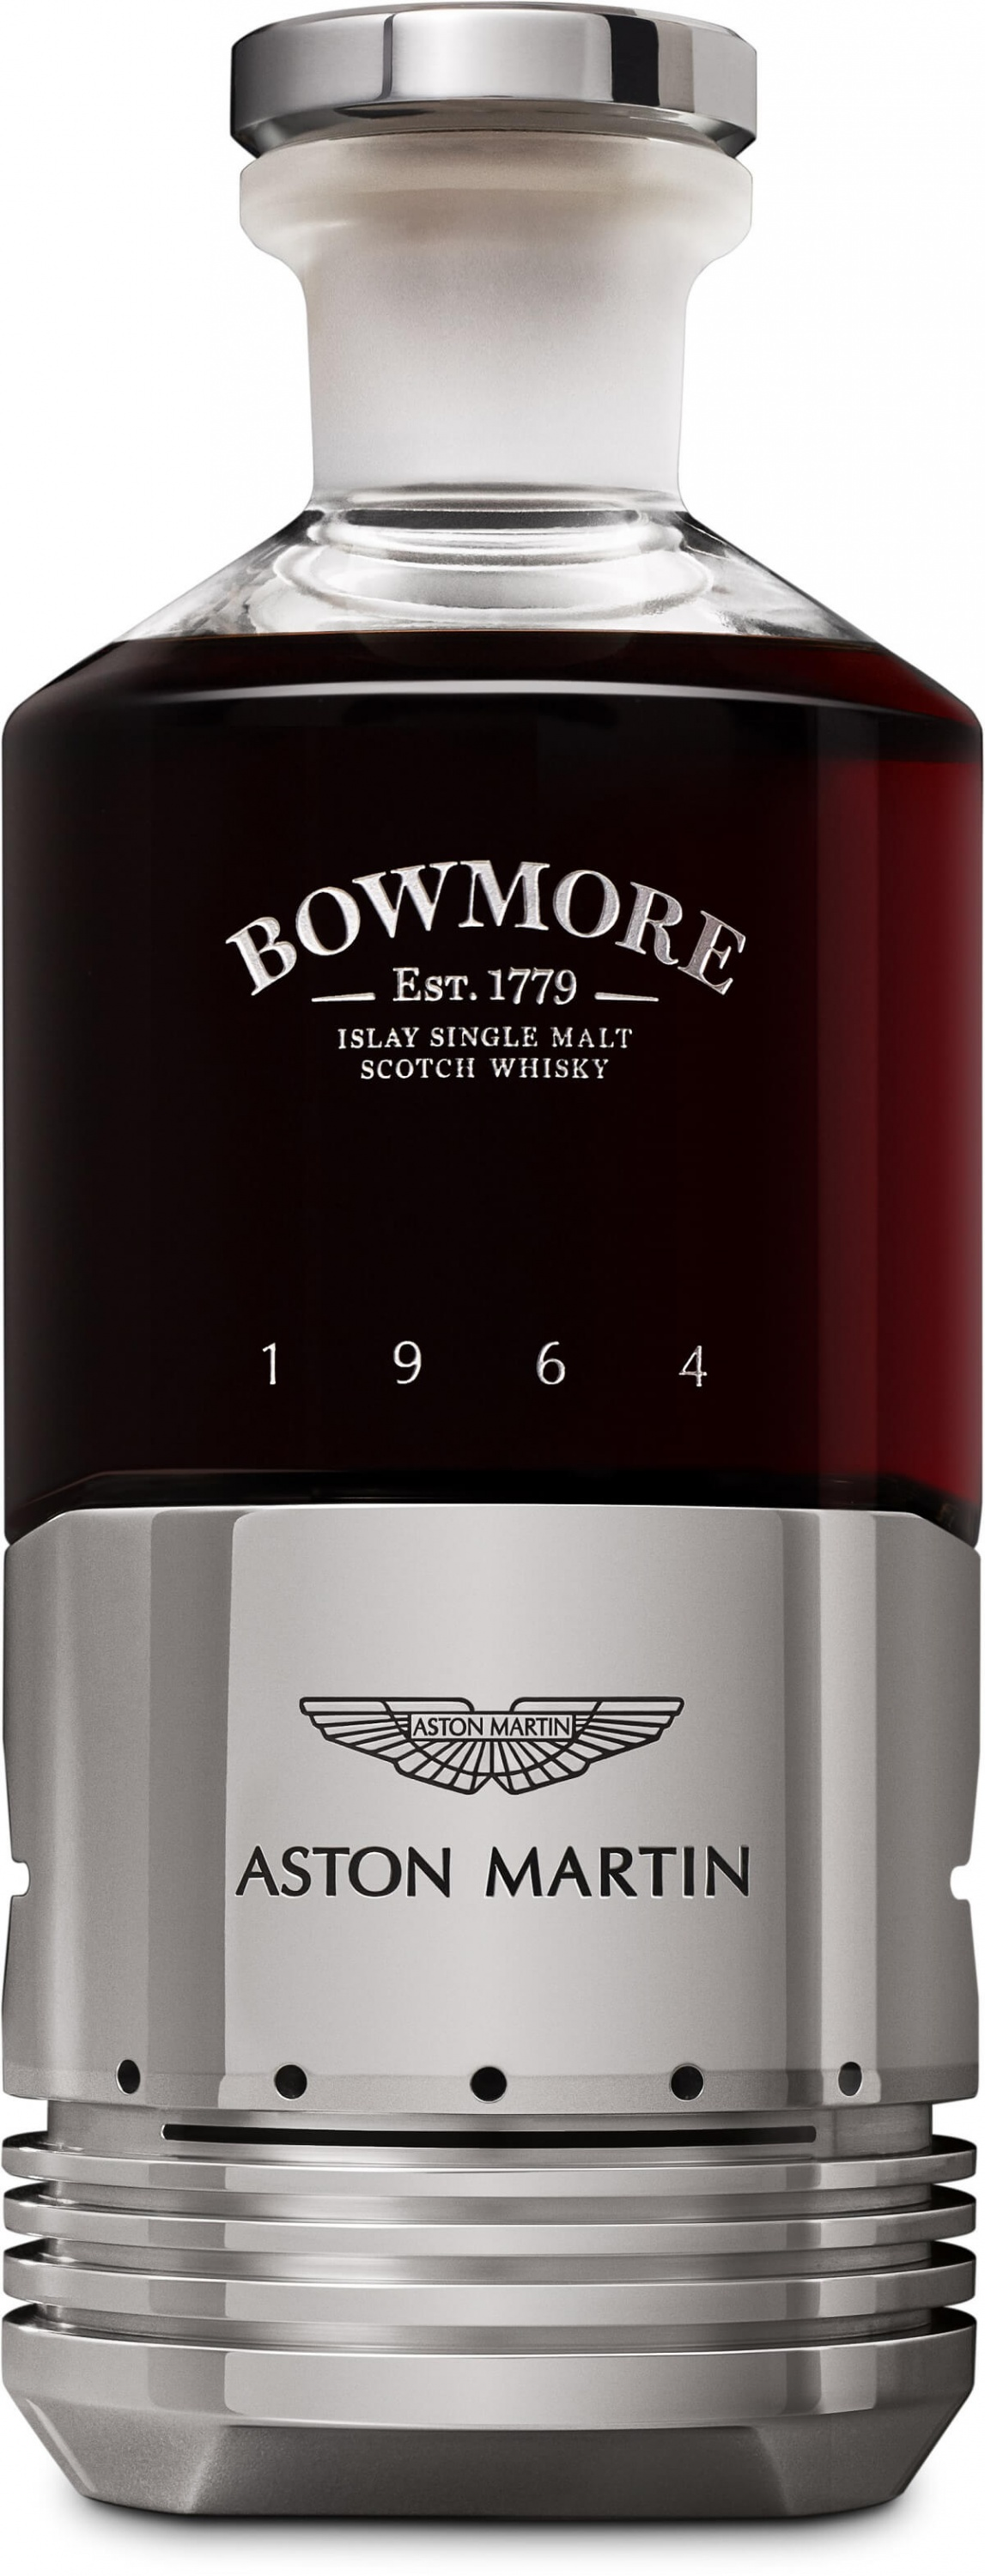 C_1.2_Black_Bowmore_DB5_Bottle_Front_Cut_Out.jpg